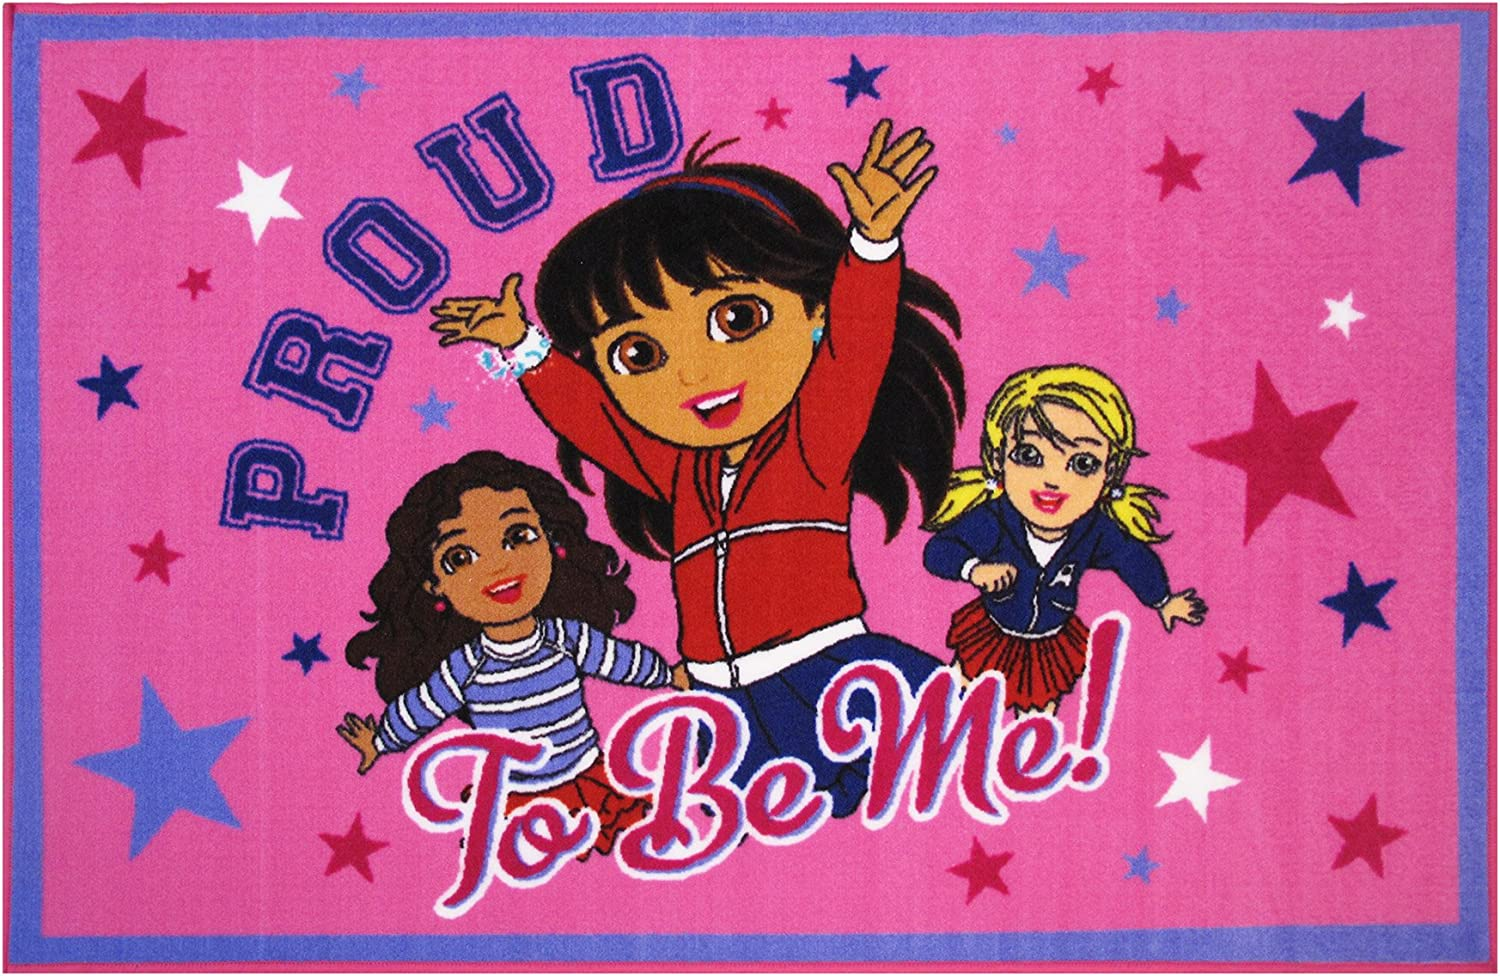 Fun Rugs Dora Area Rug Proud to Be Me 39By58Inch